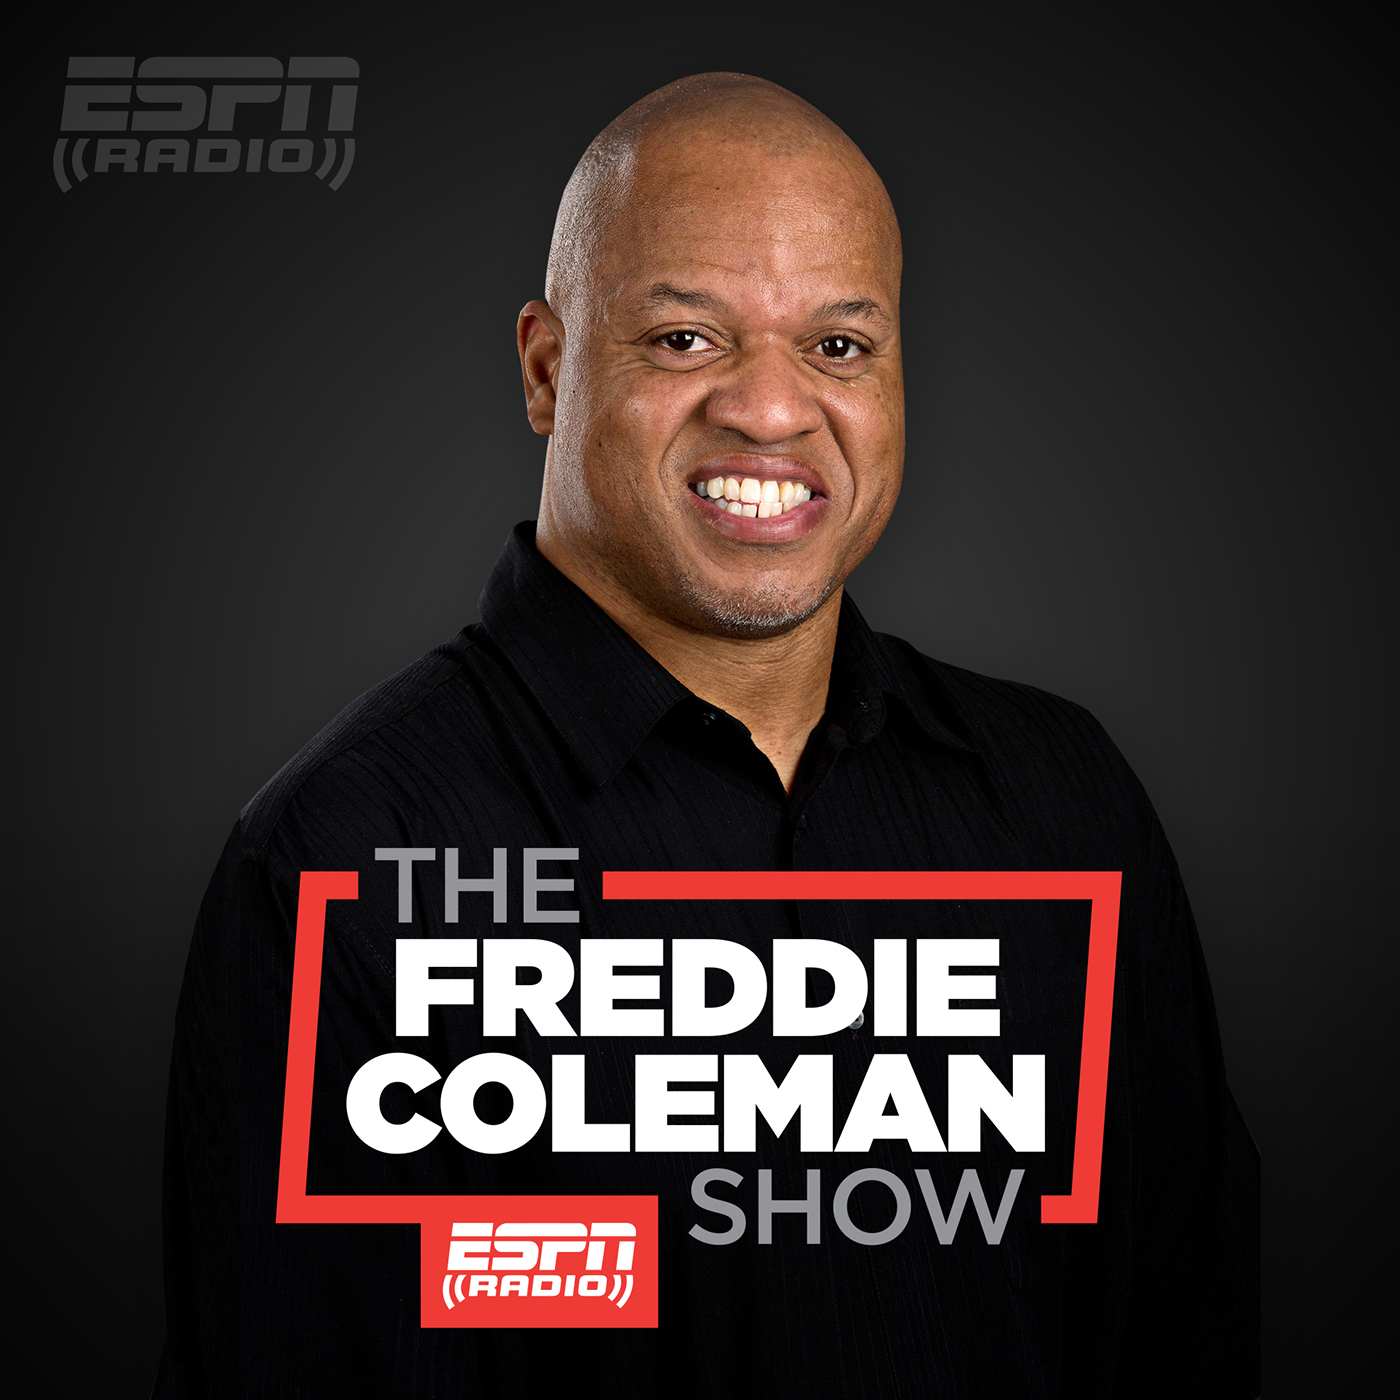 The Freddie Coleman Show